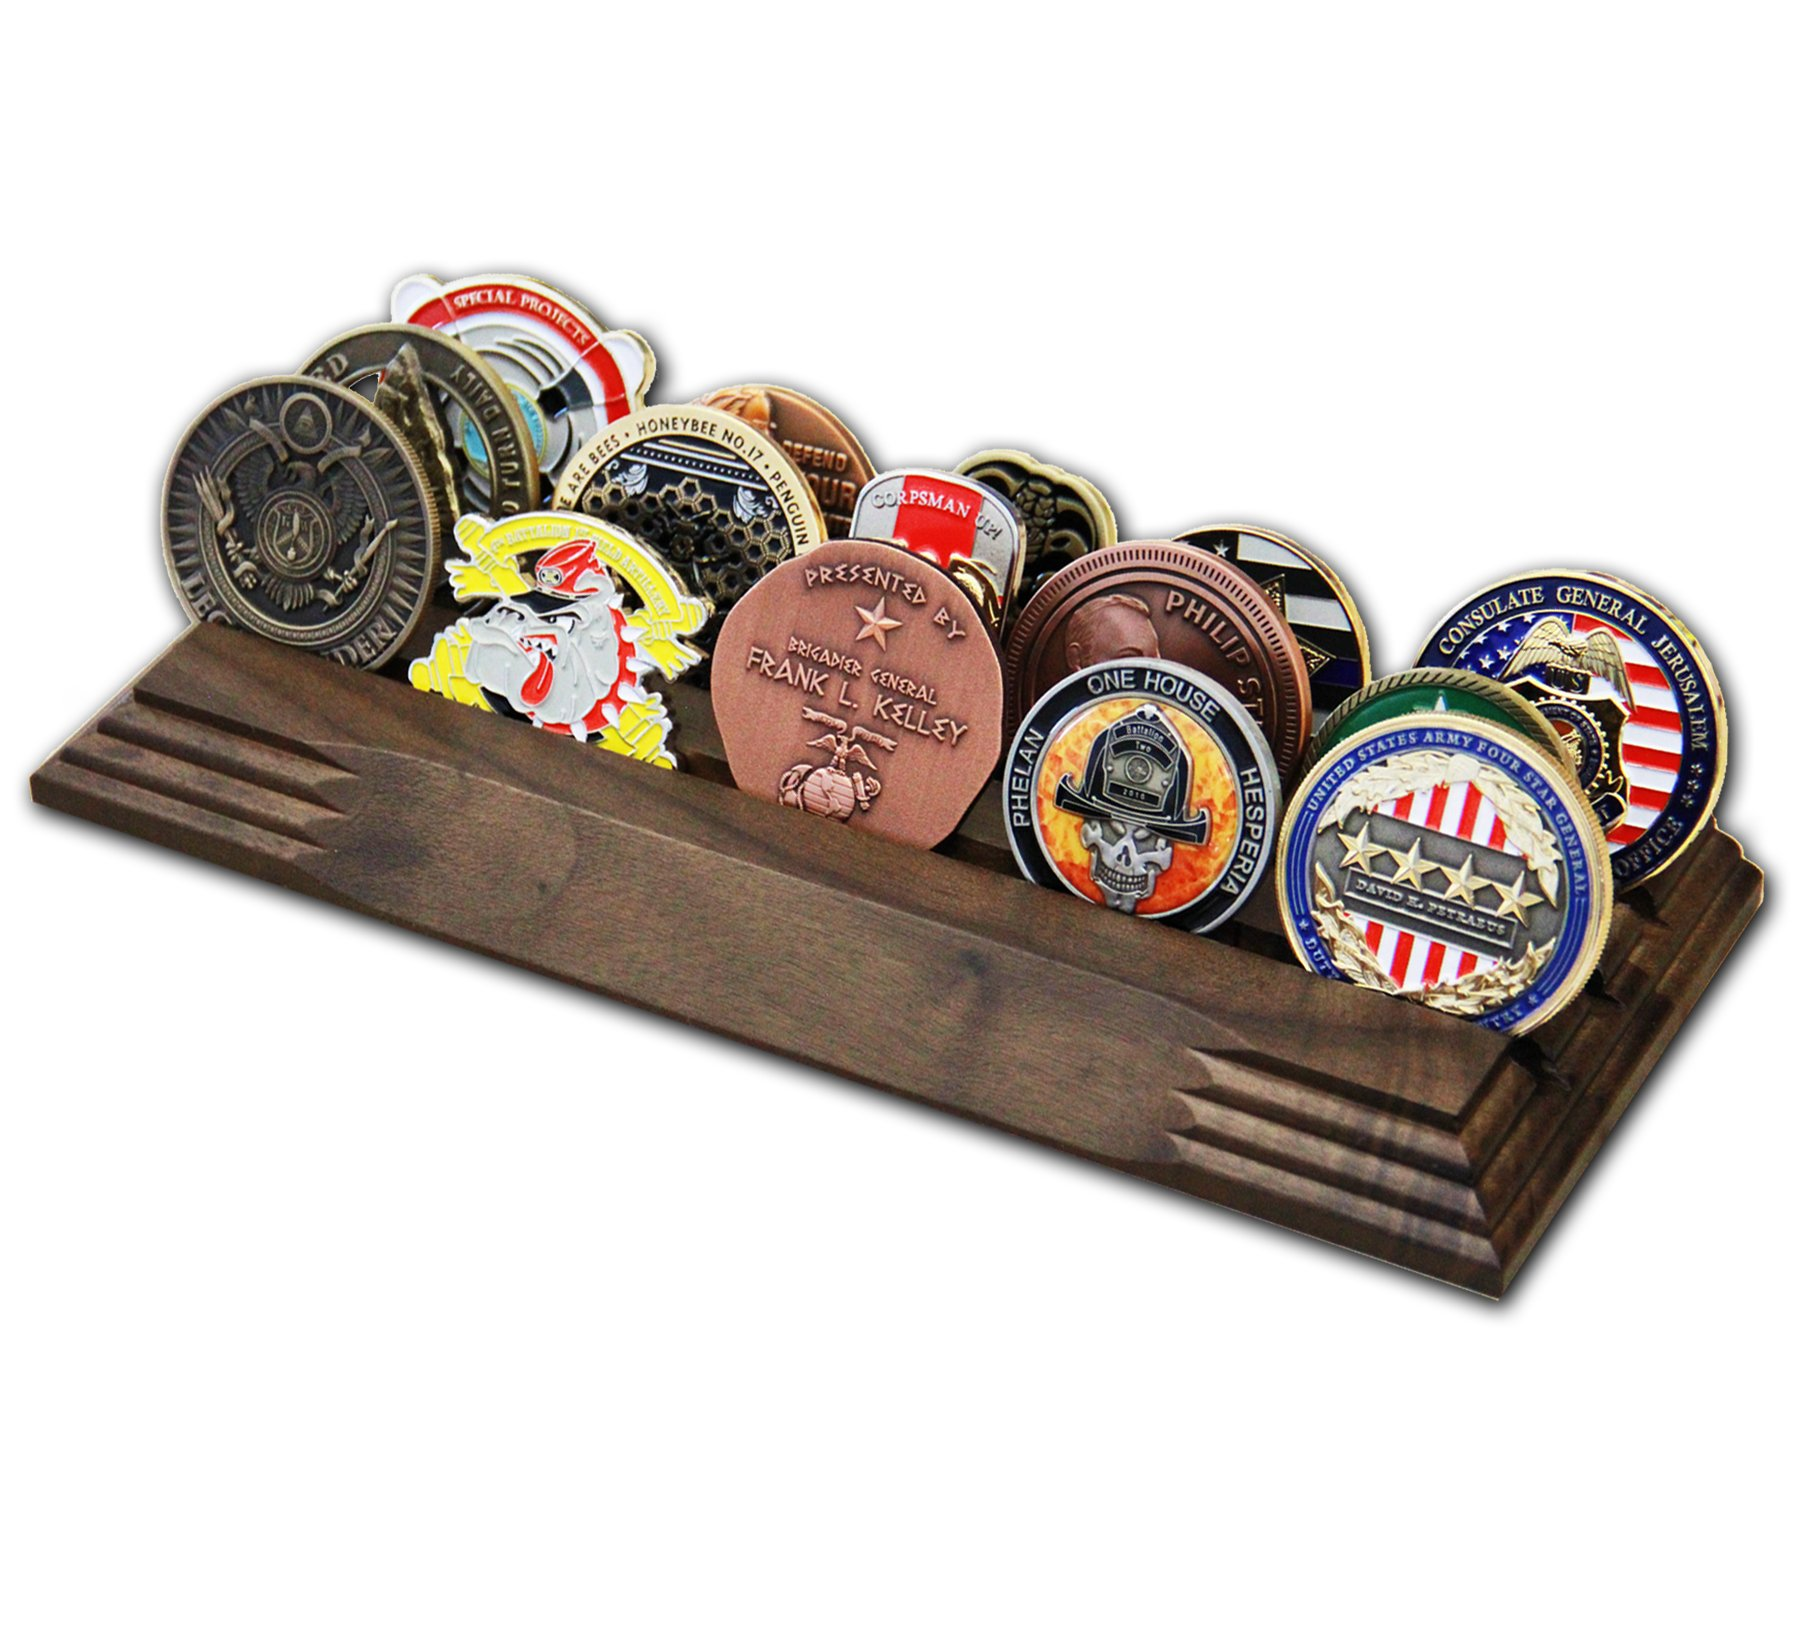 3 Row Challenge Coin Holder - Military Coin Display Stand - Amazing Military Challenge Coin Holder - Holds 14-19 Coins 3 Rows MADE IN THE USA! (SOLID Walnut) by Coins For Anything Inc